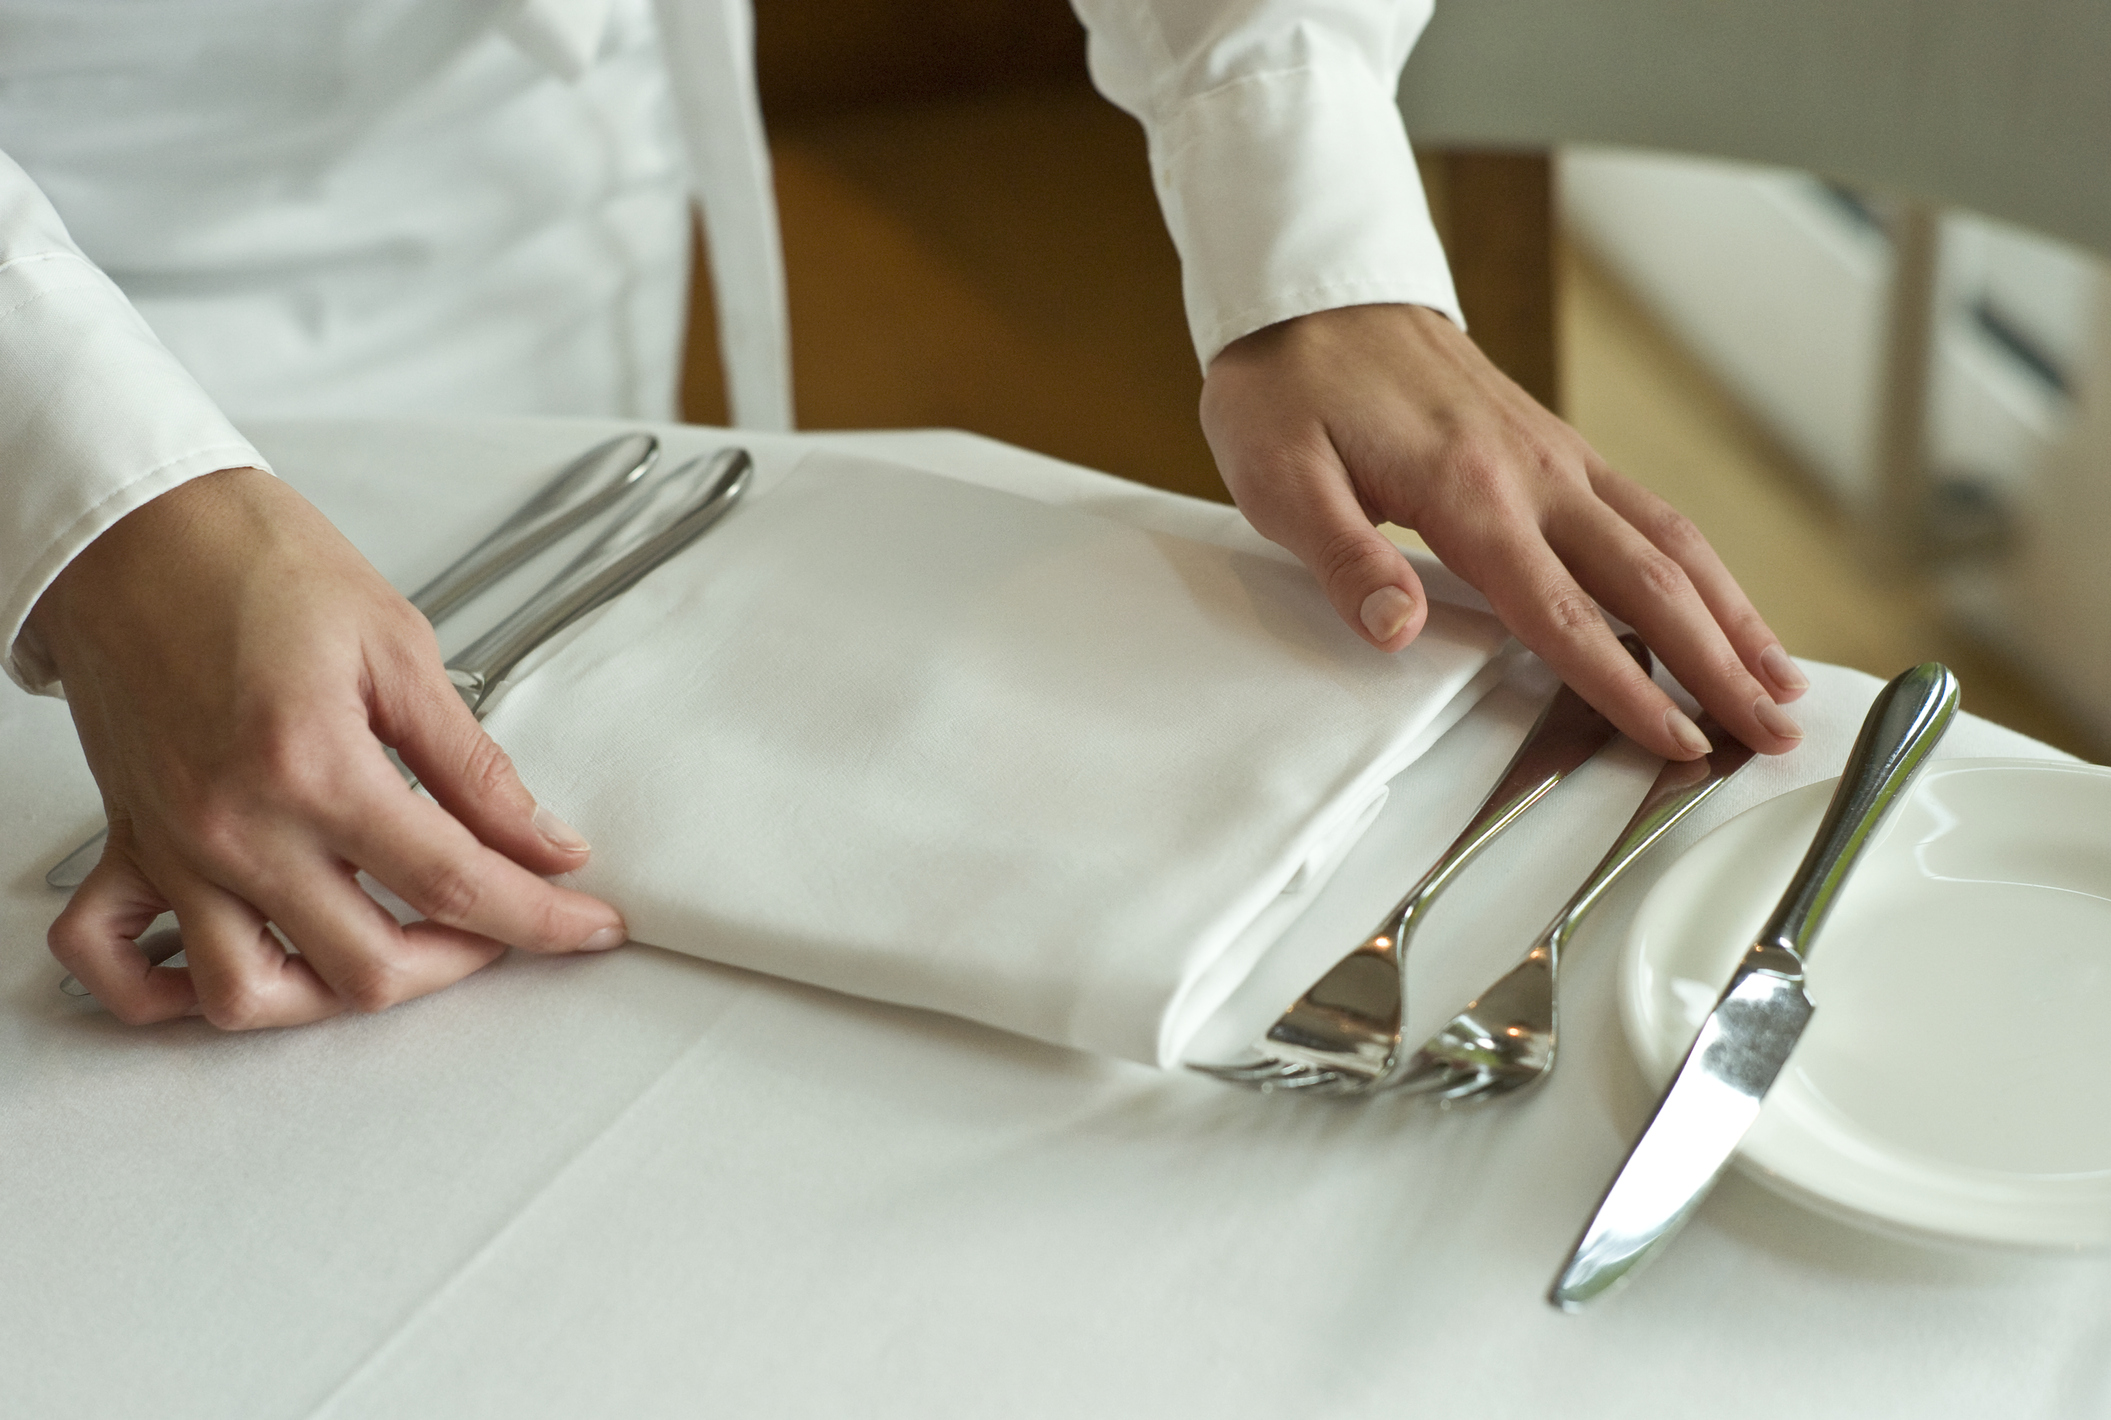 Picture of Waitress adjusting table settings in restaurant, mid section